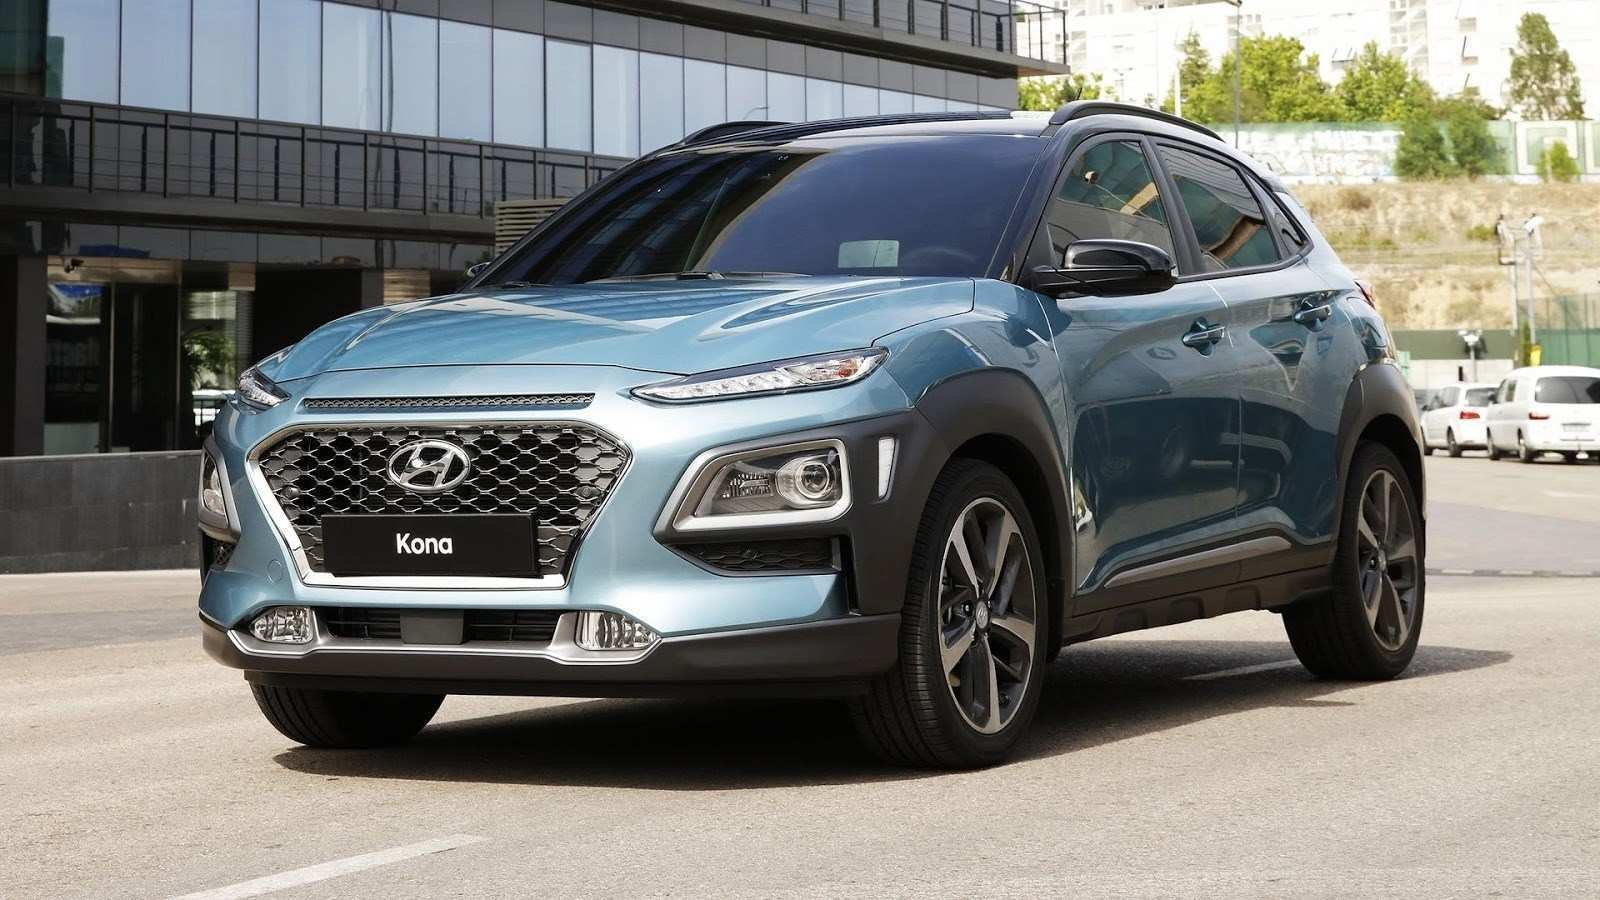 65 The When Does The 2020 Hyundai Kona Come Out Review